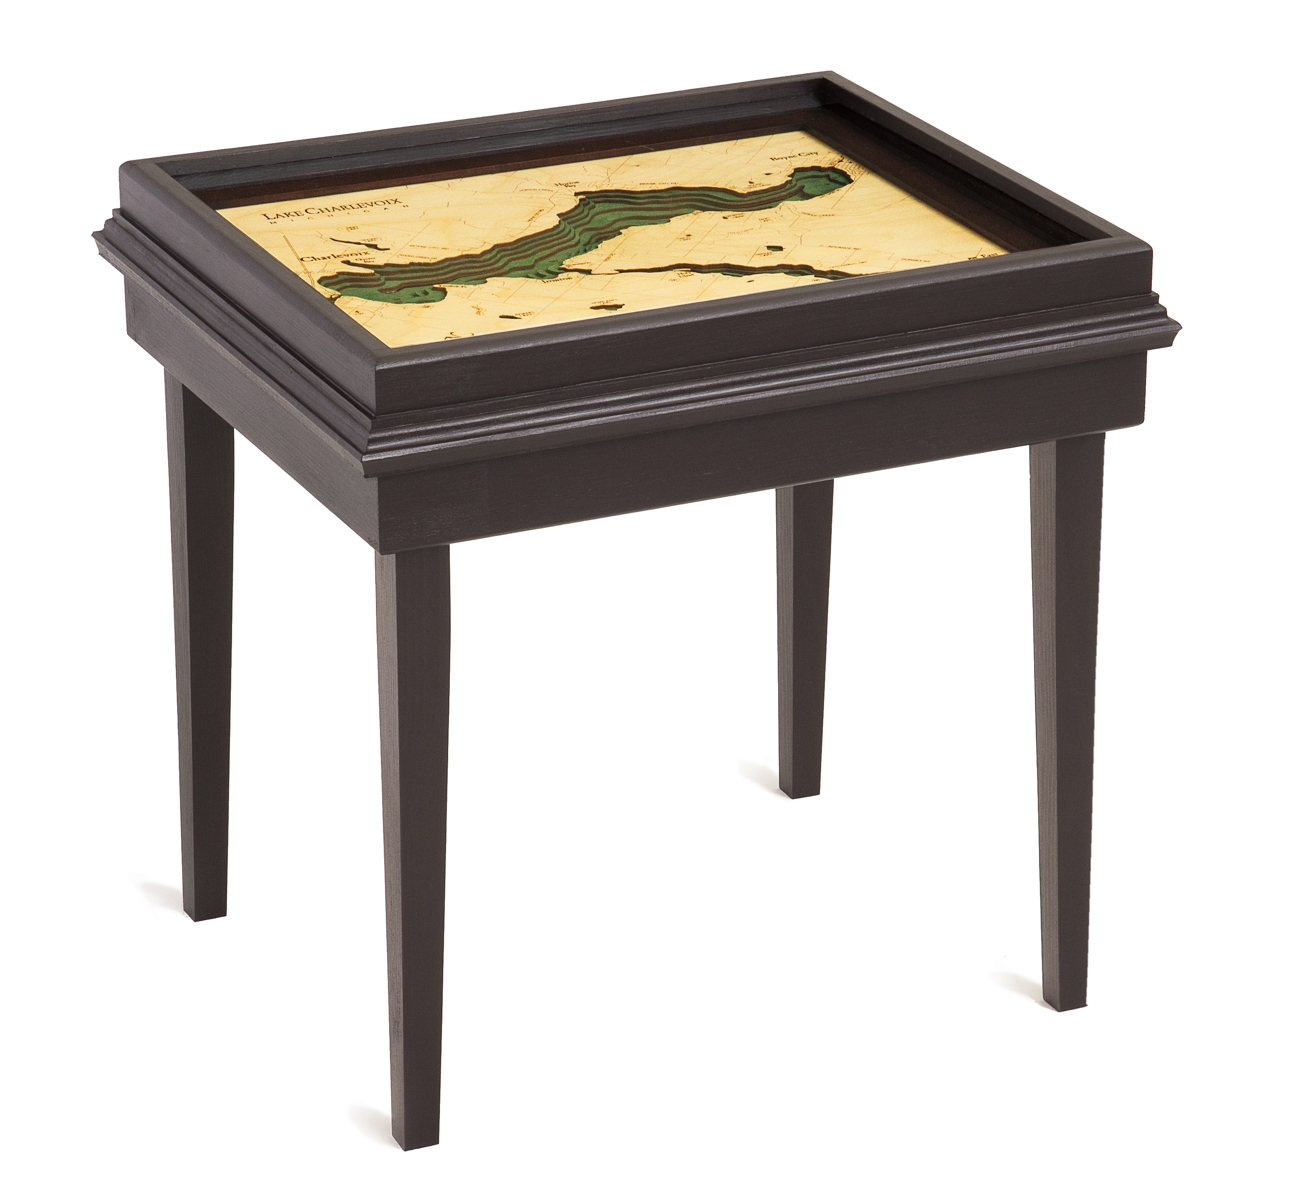 Remarkable Lake Charlevoix 3D Wood Nautical Chart End Table 22 X 18 Home Remodeling Inspirations Propsscottssportslandcom